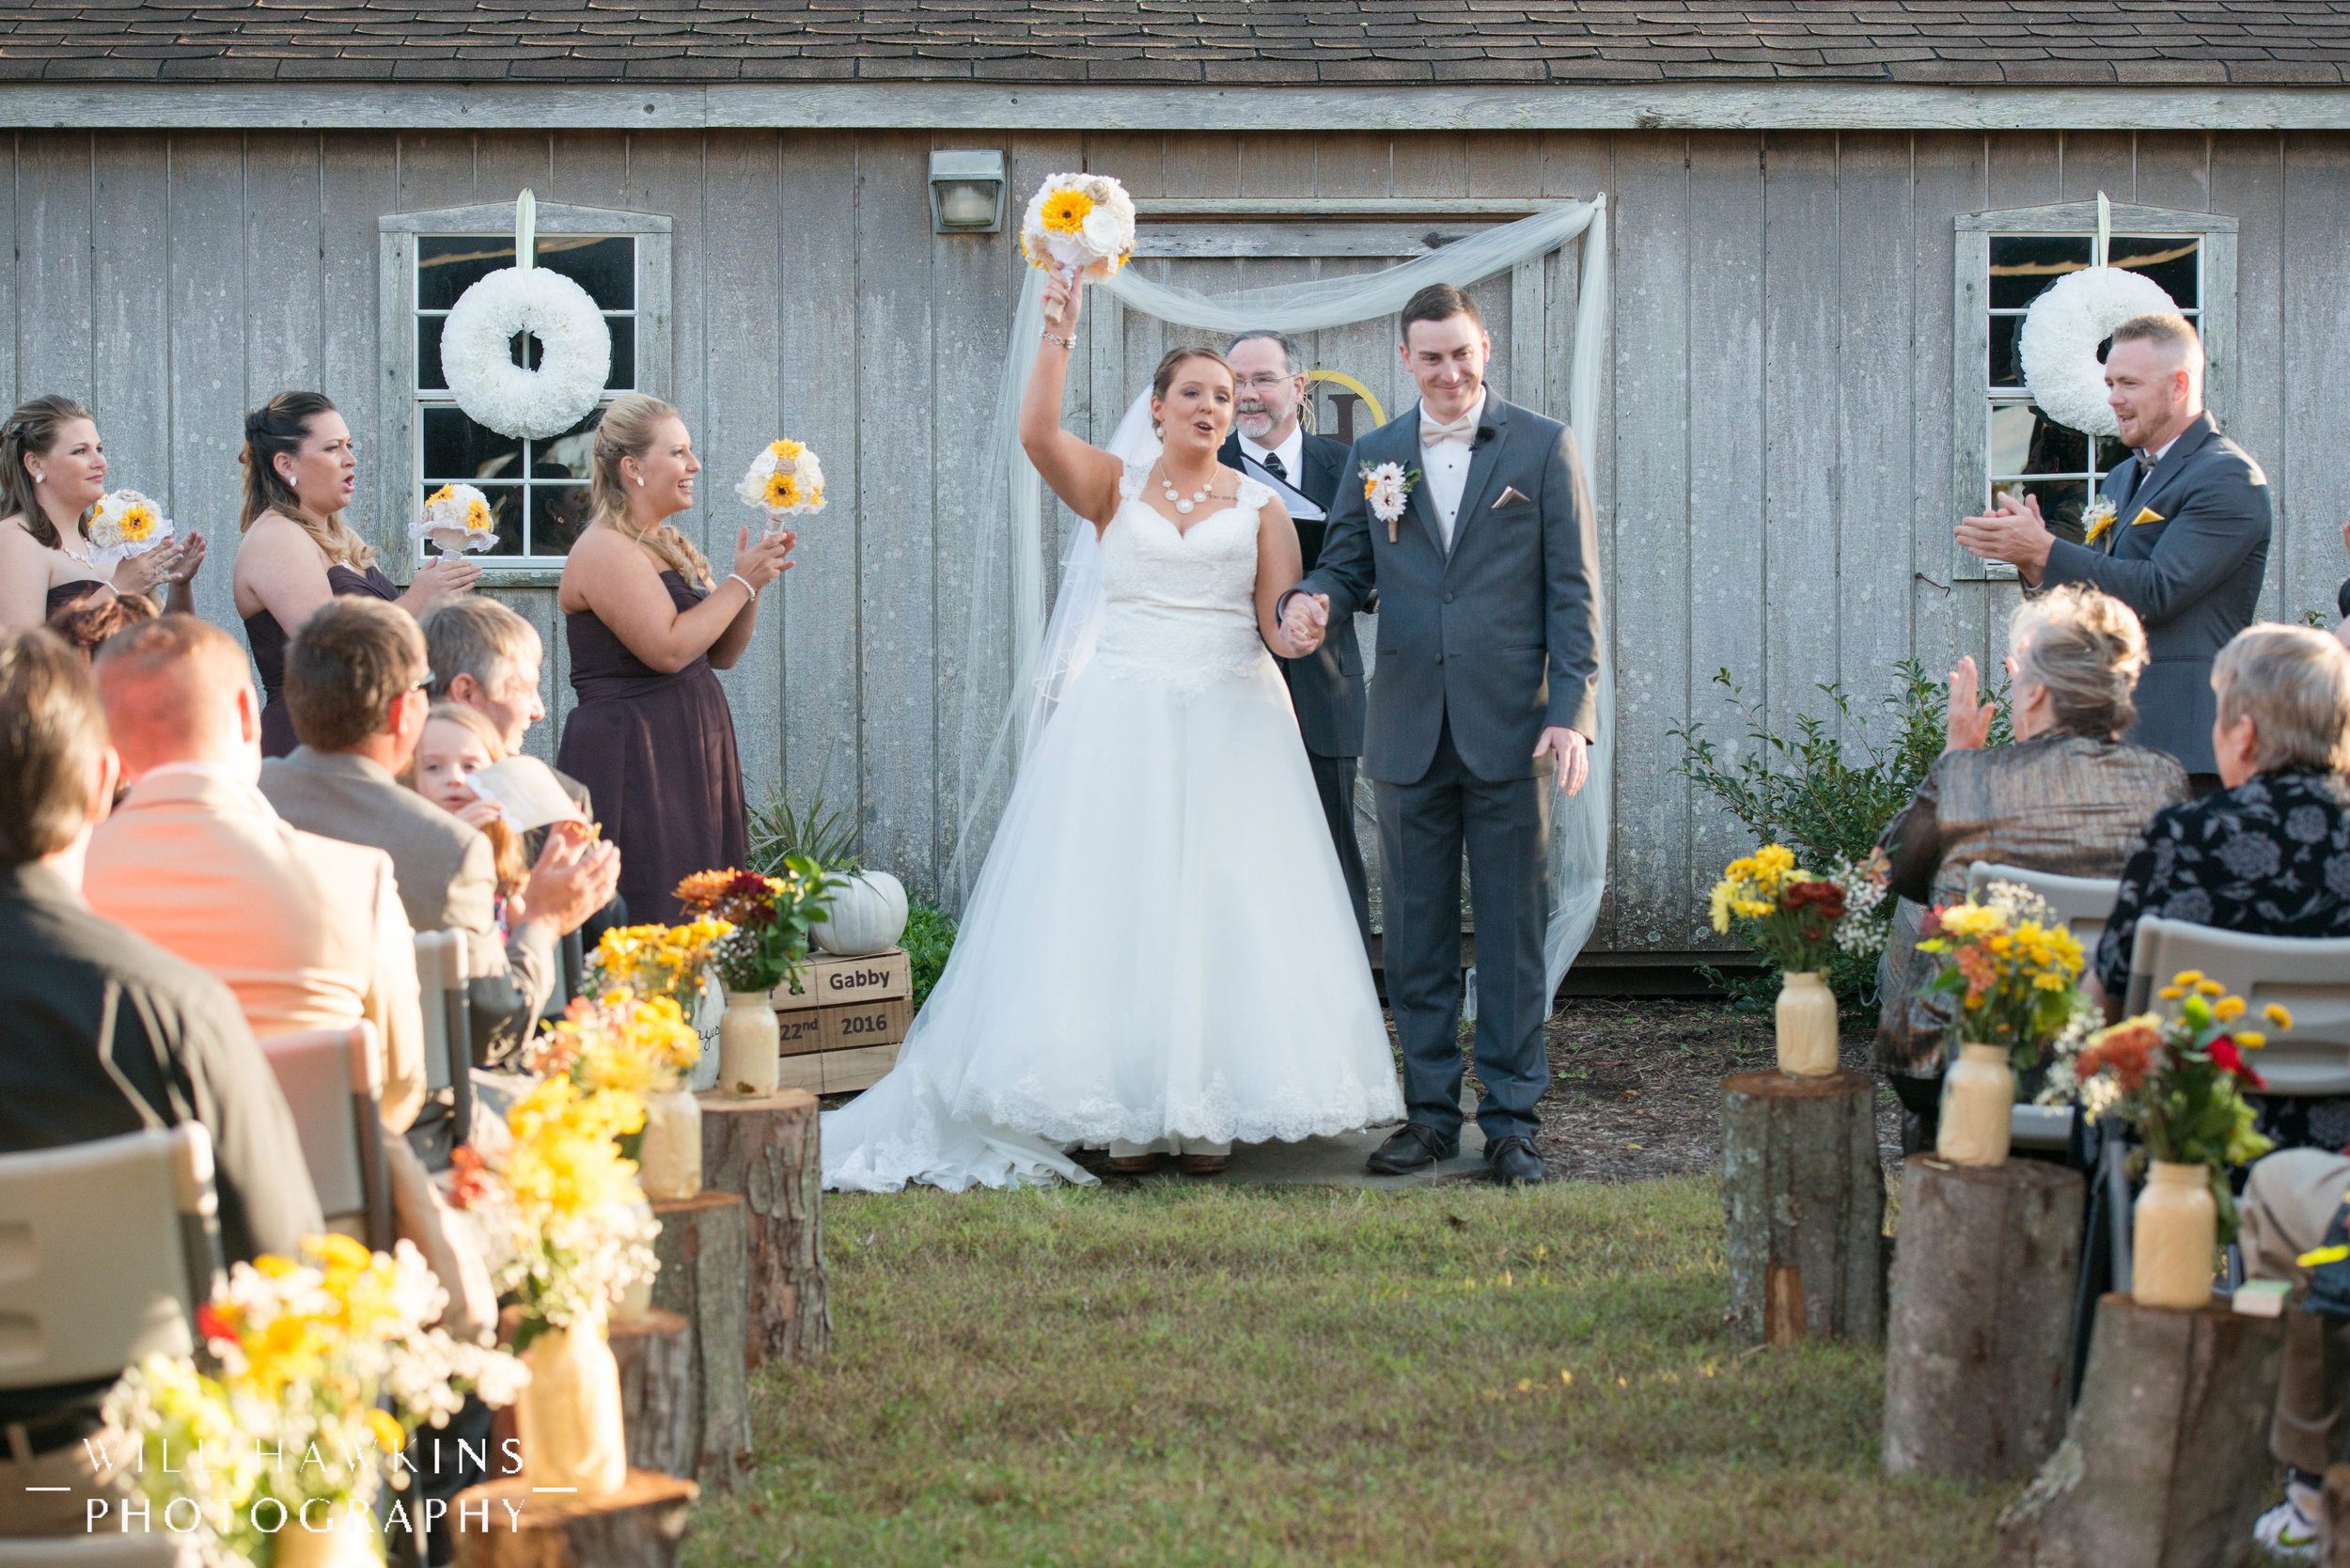 Virginia Wedding Photographer, Will Hawkins Photography, Virginia Beach Wedding Photographer,